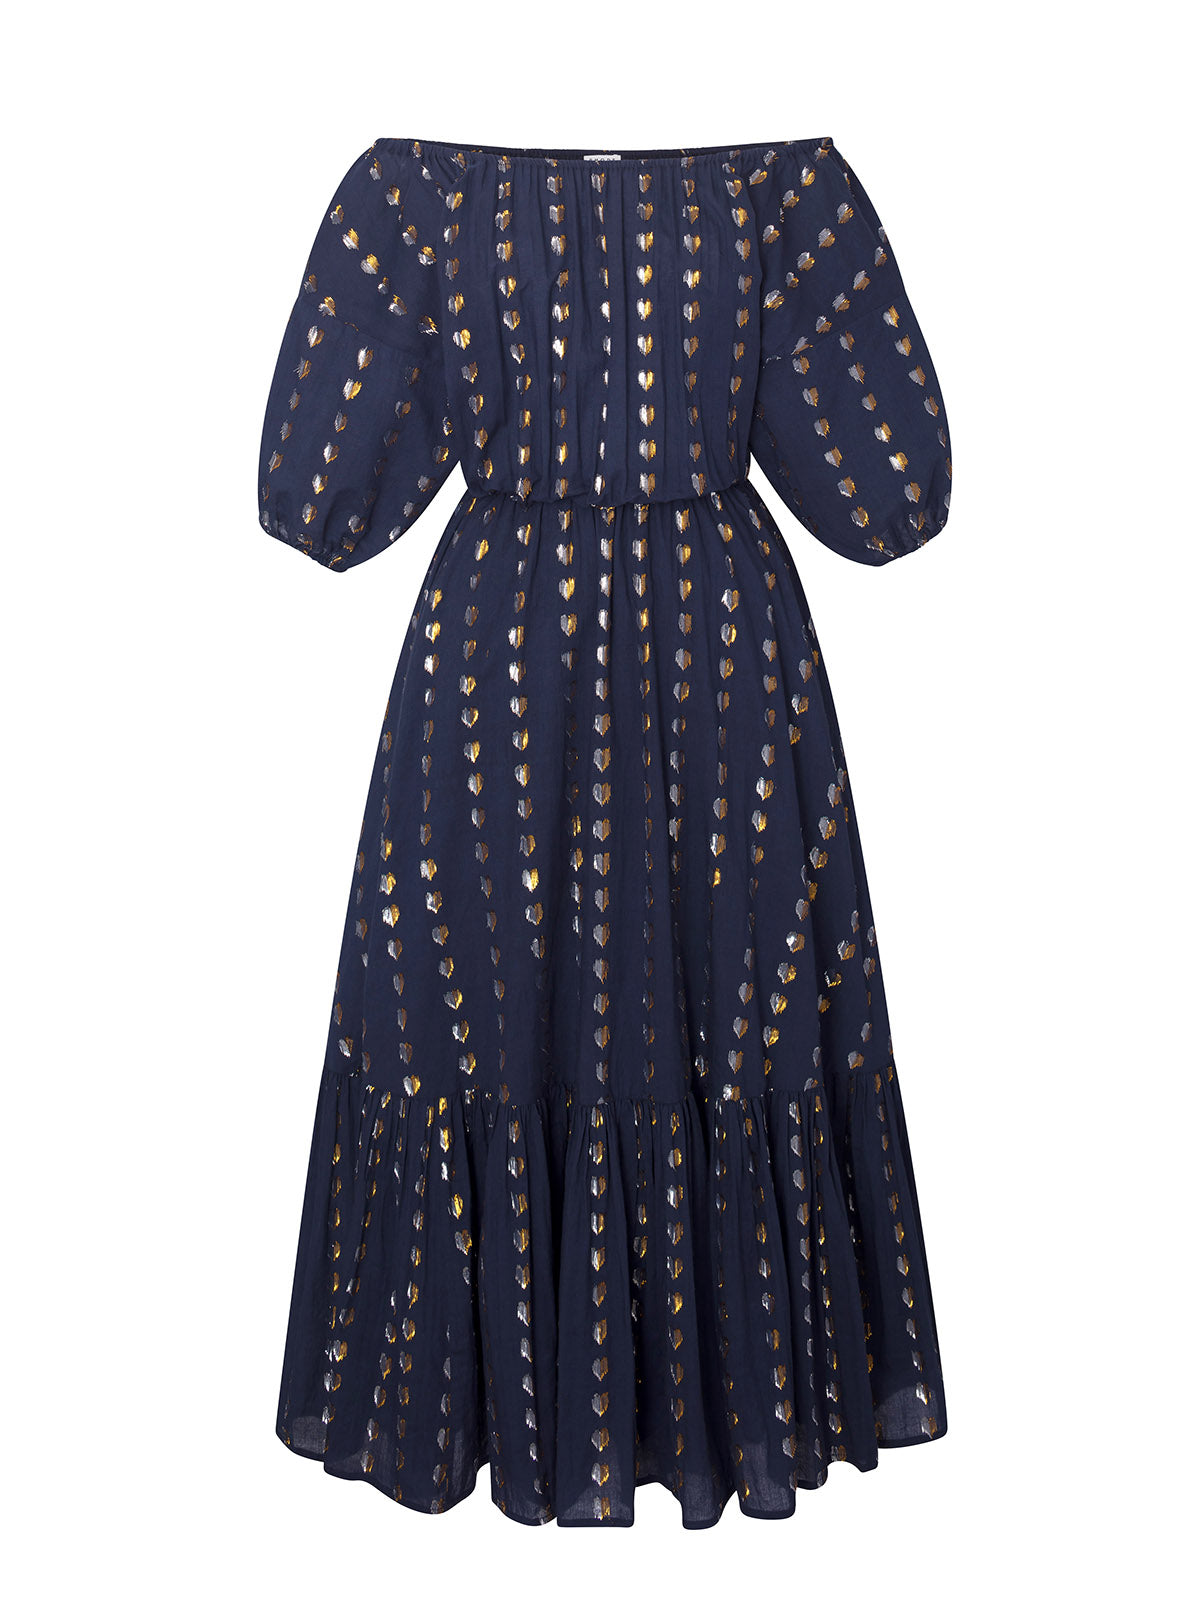 Frida Dress | Navy Metallic